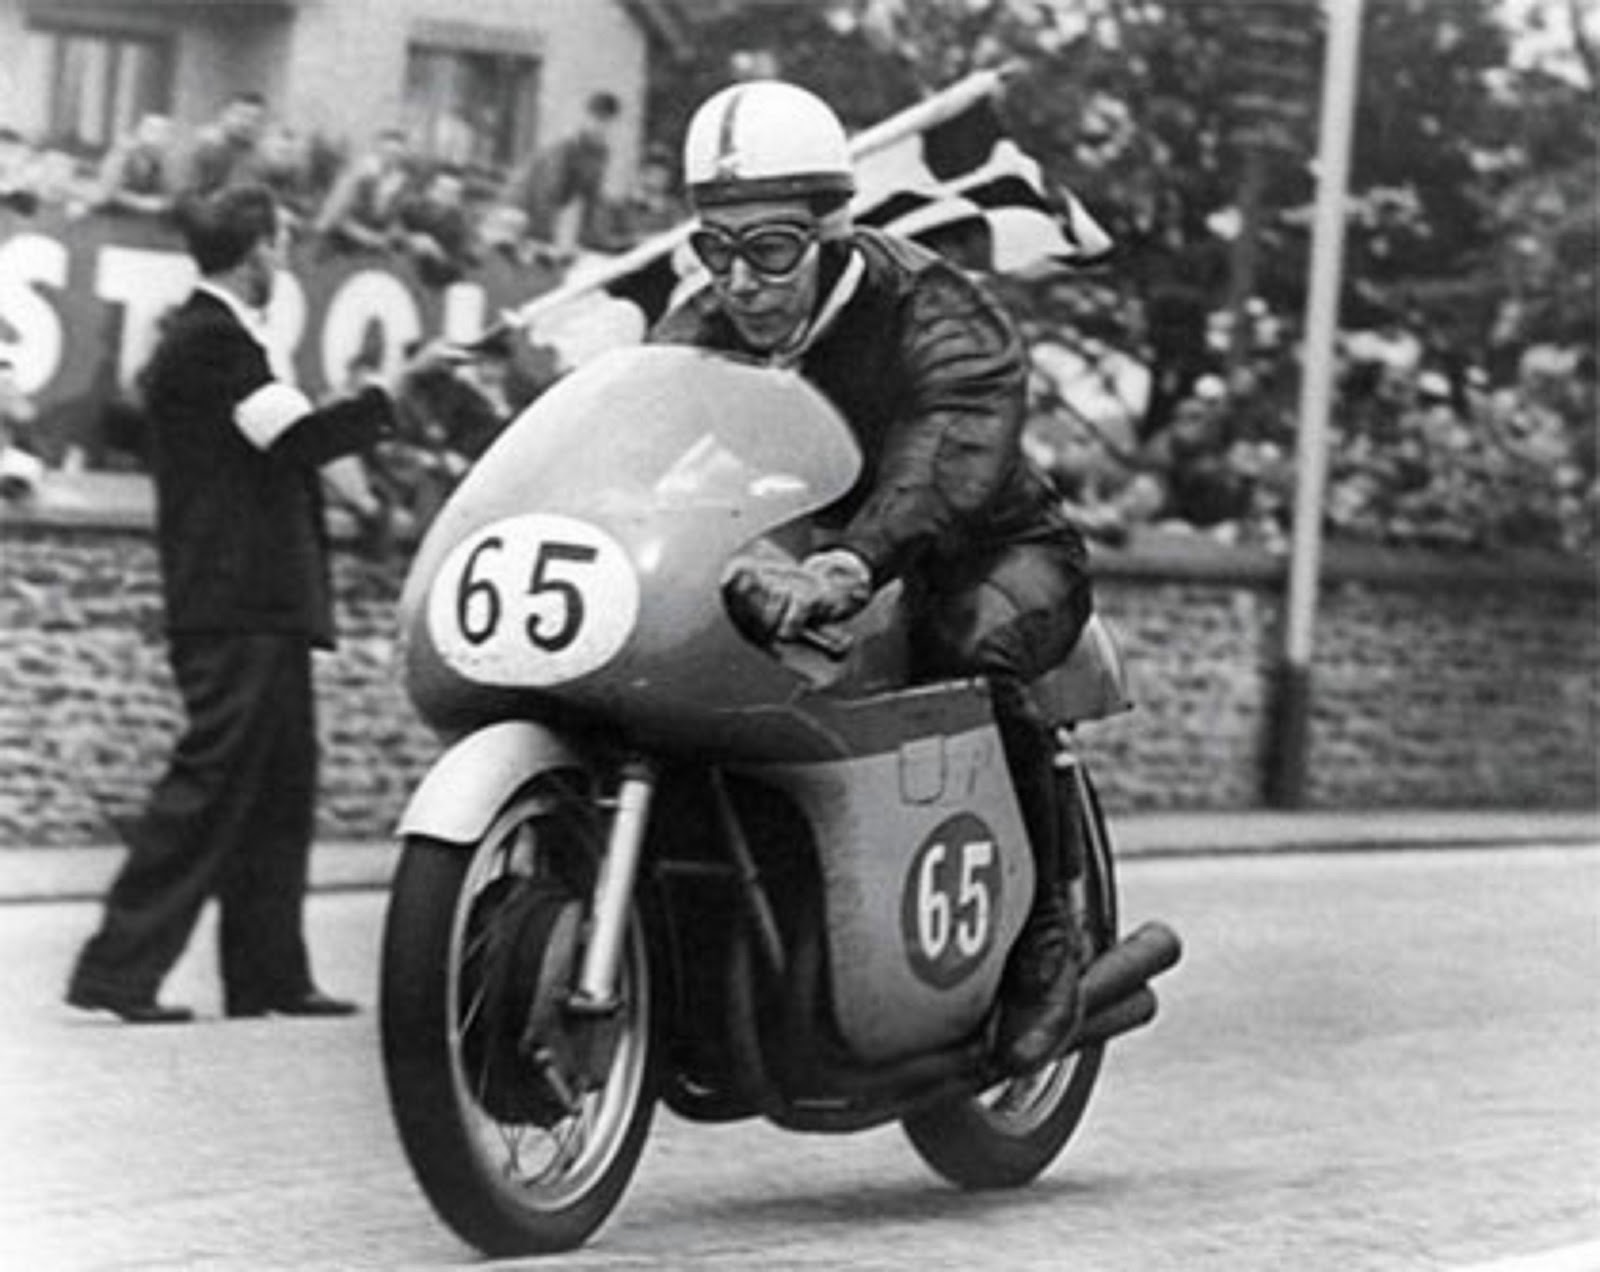 john-surtees-awarded-cbe-honors-still-not-a-knight-despite-being-a-living-racing-legend-103389_1.jpg